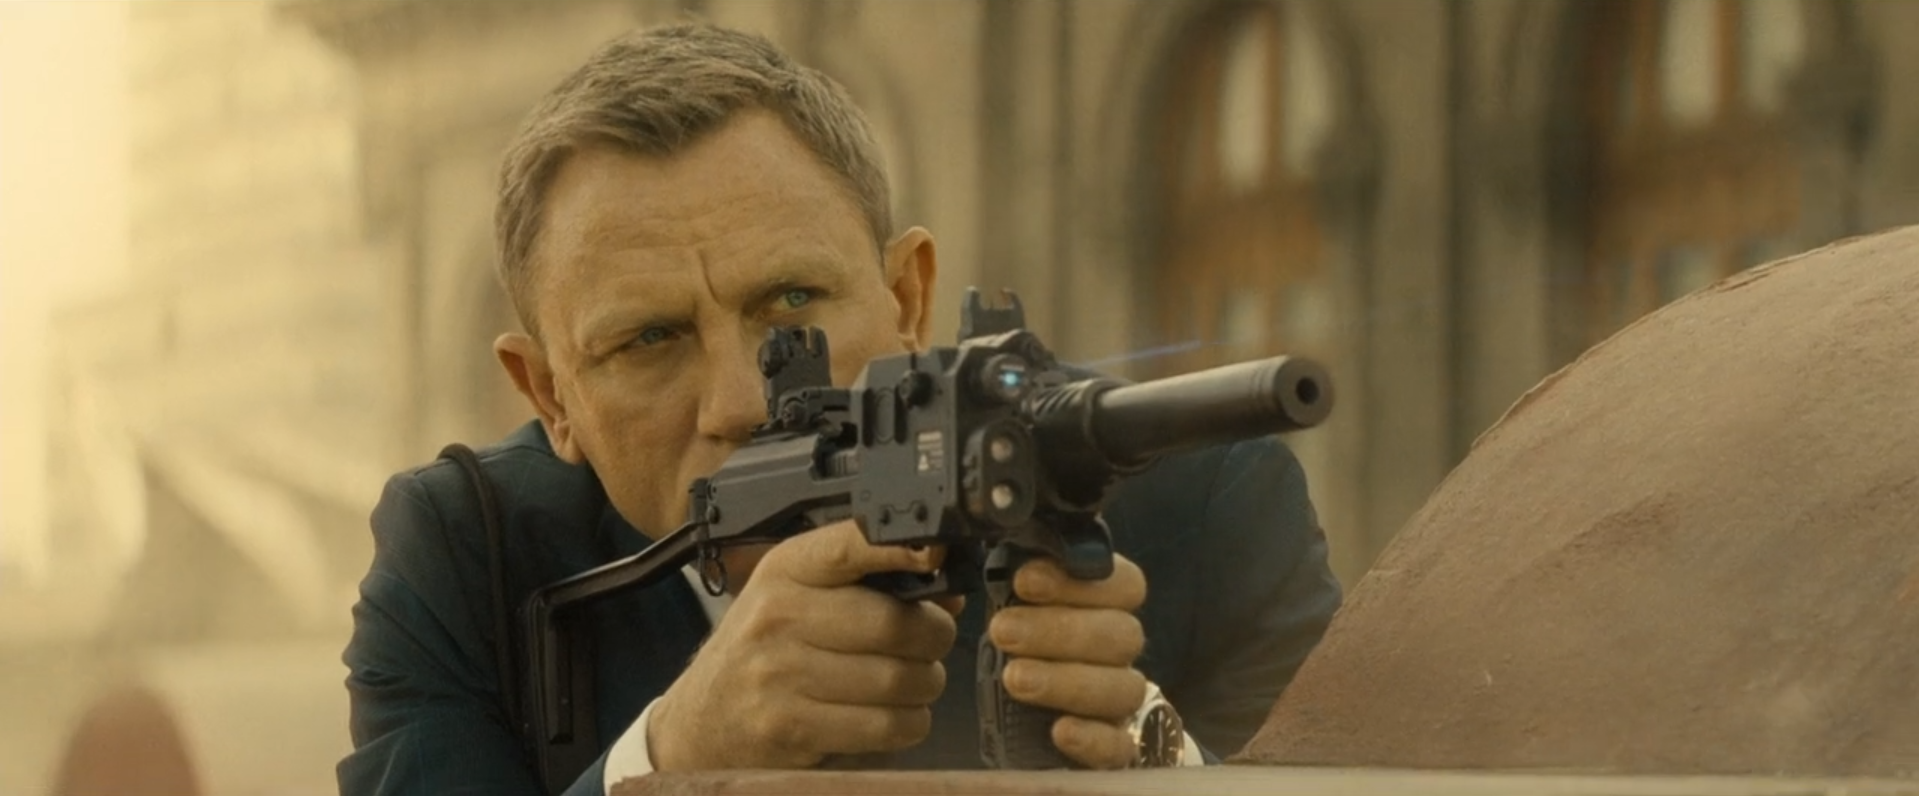 24. Spectre.mp4 - VLC media player 2017-09-06 11.52.13.png